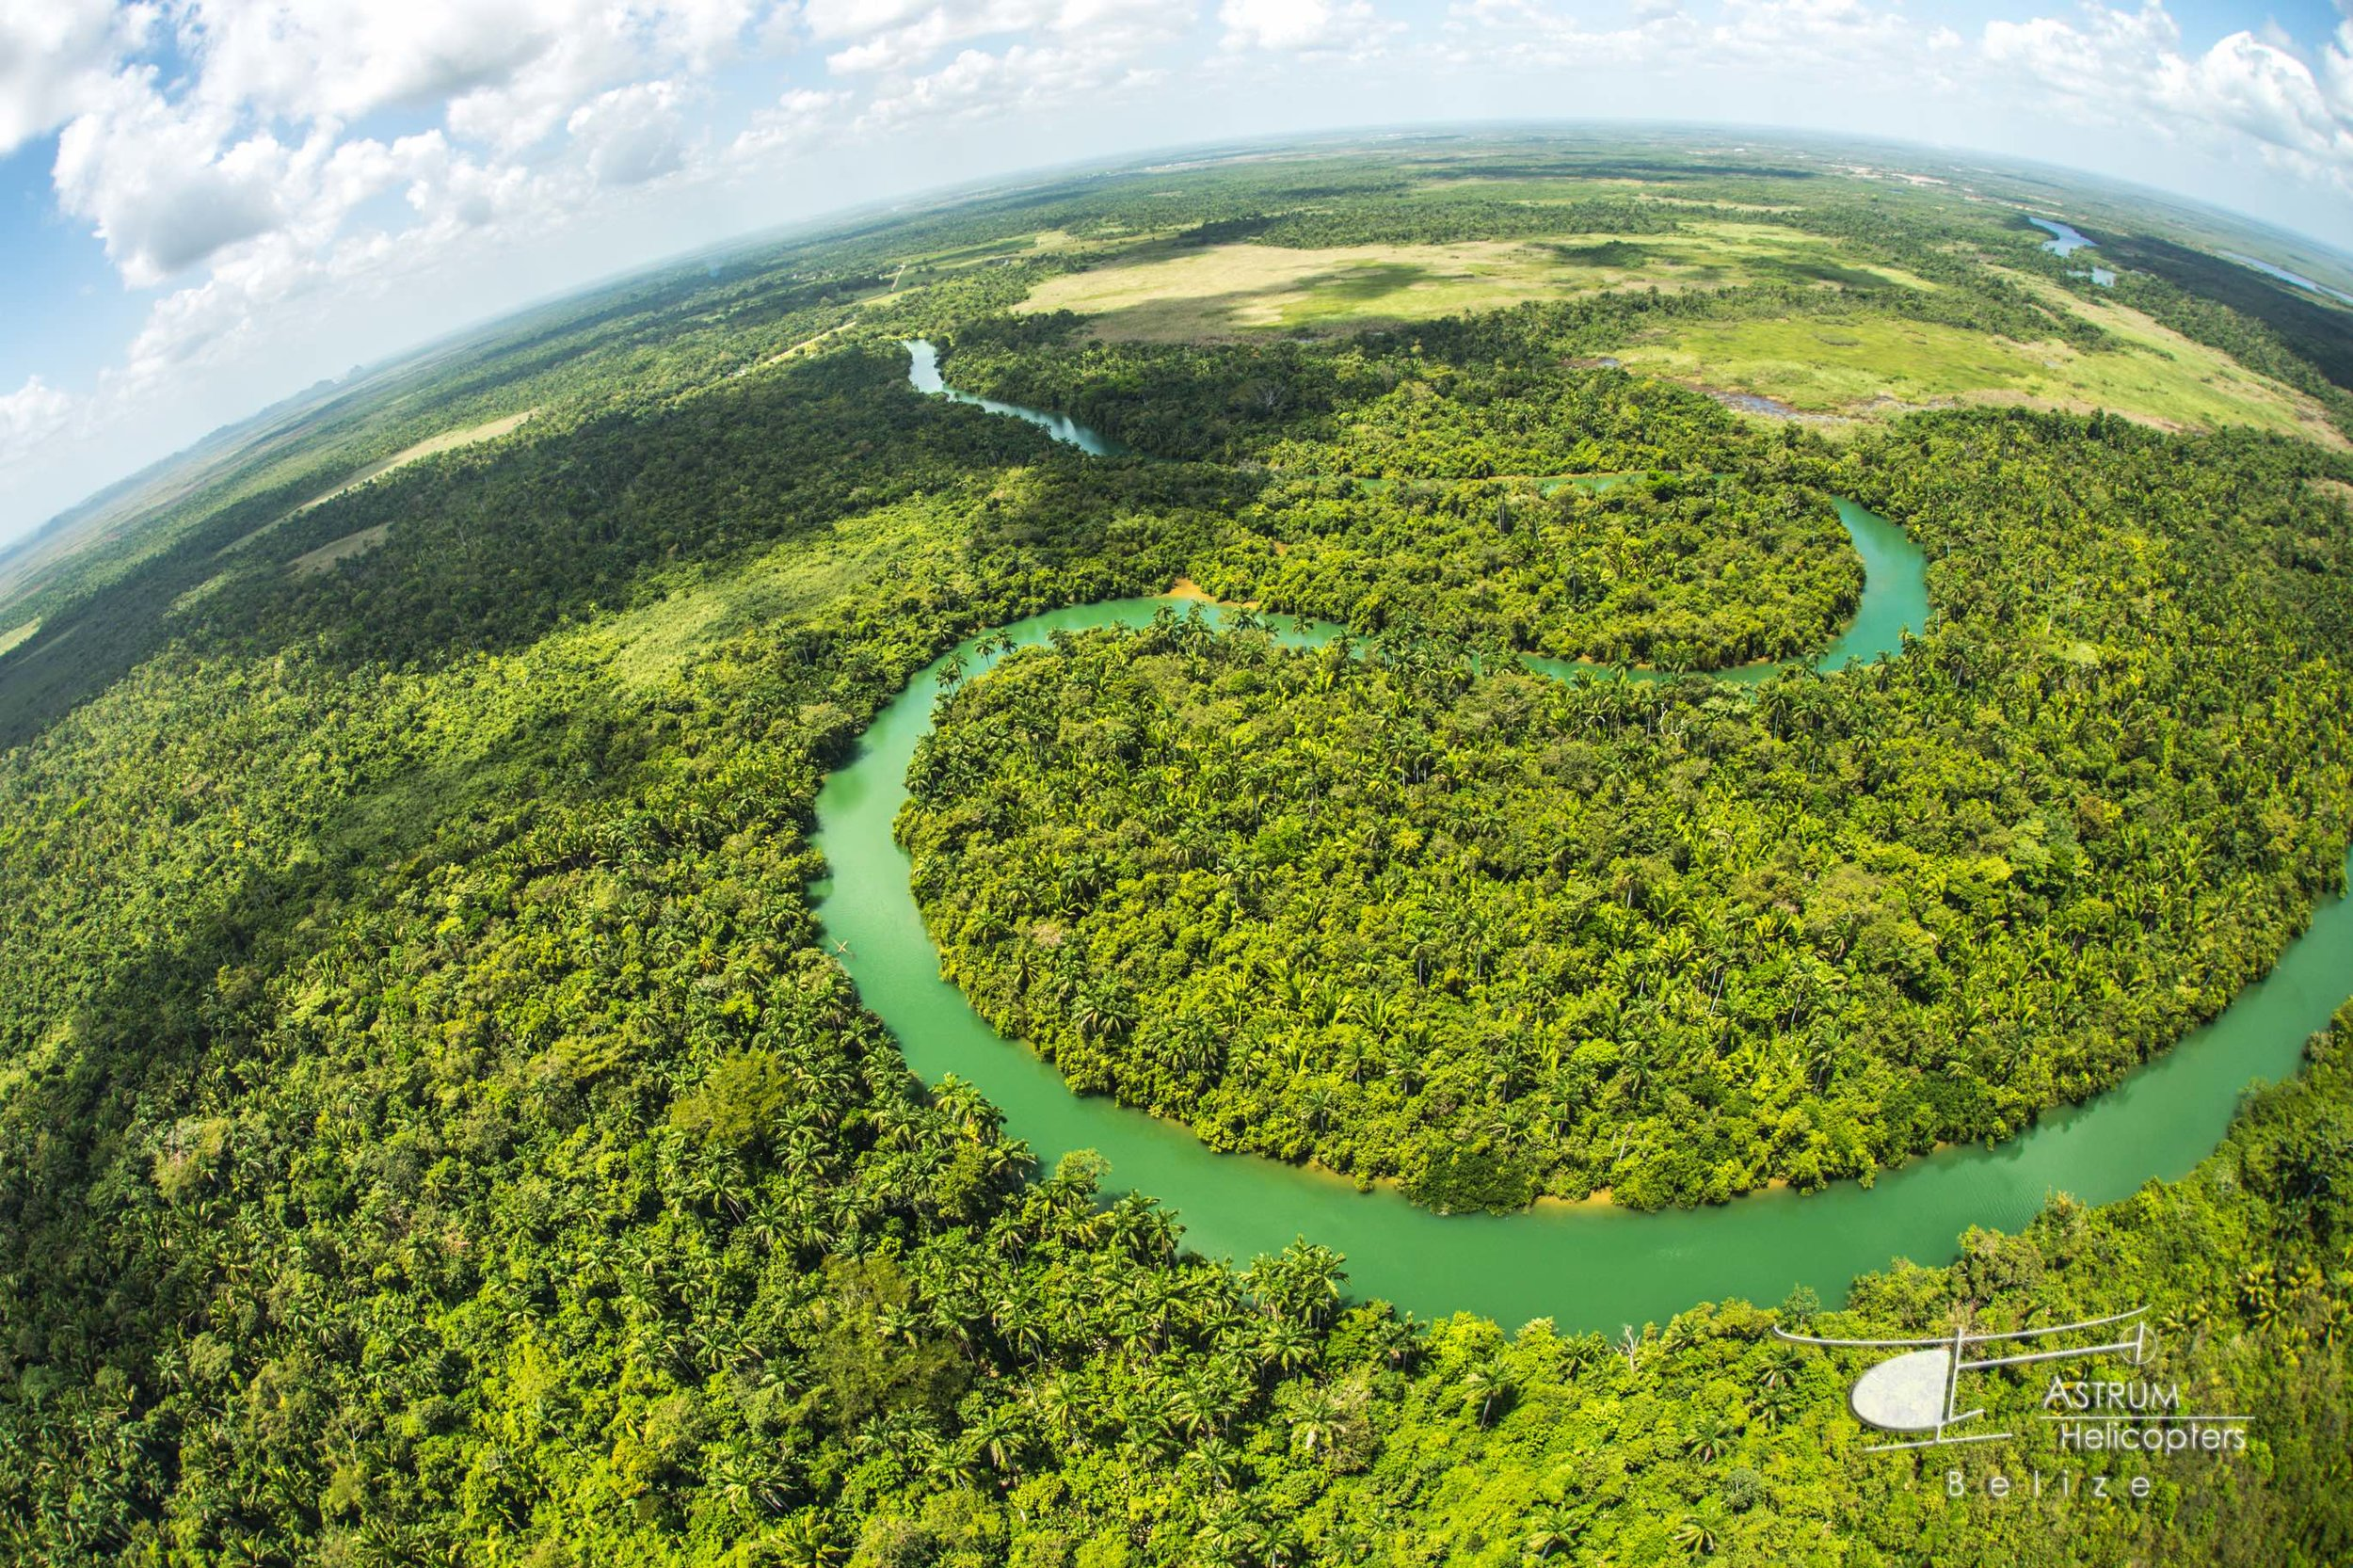 See Belize from above with Astrum Helicopters